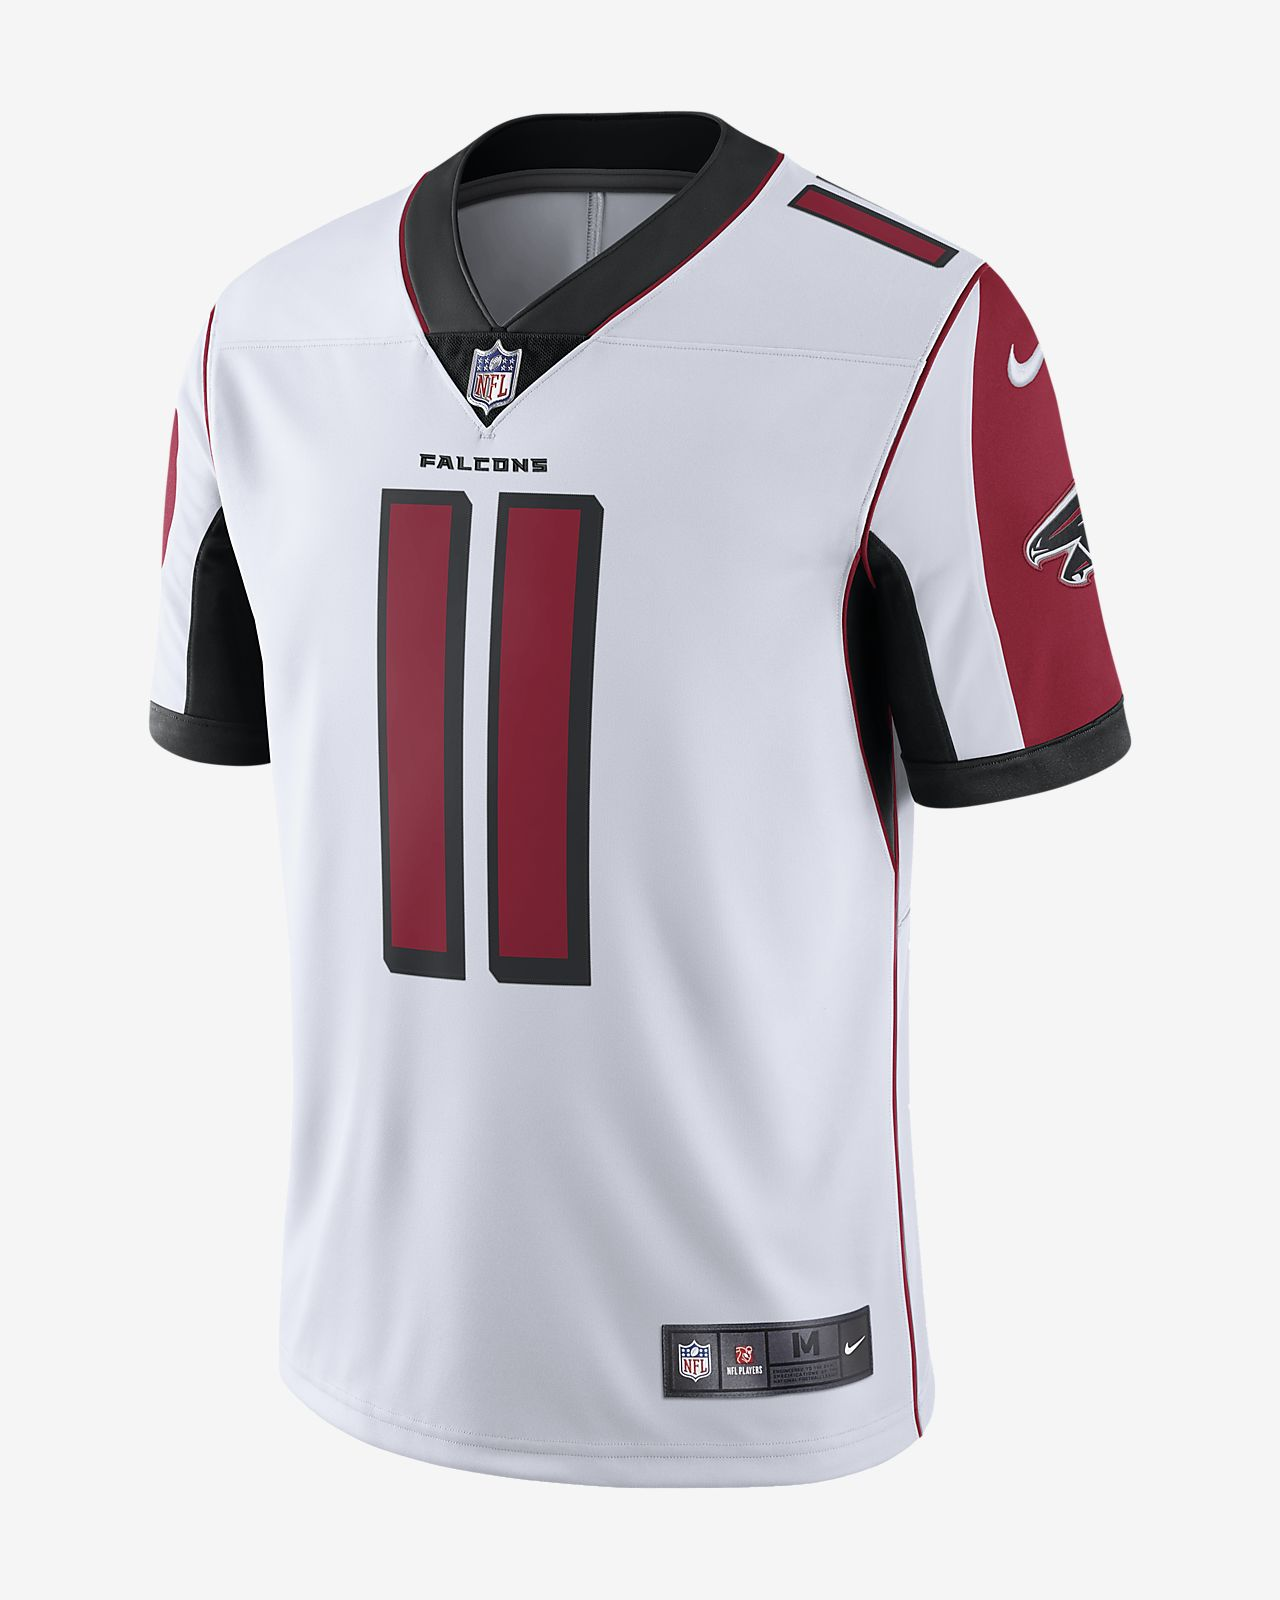 76dad665 NFL Atlanta Falcons (Julio Jones) Men's Limited Vapor Untouchable Football  Jersey